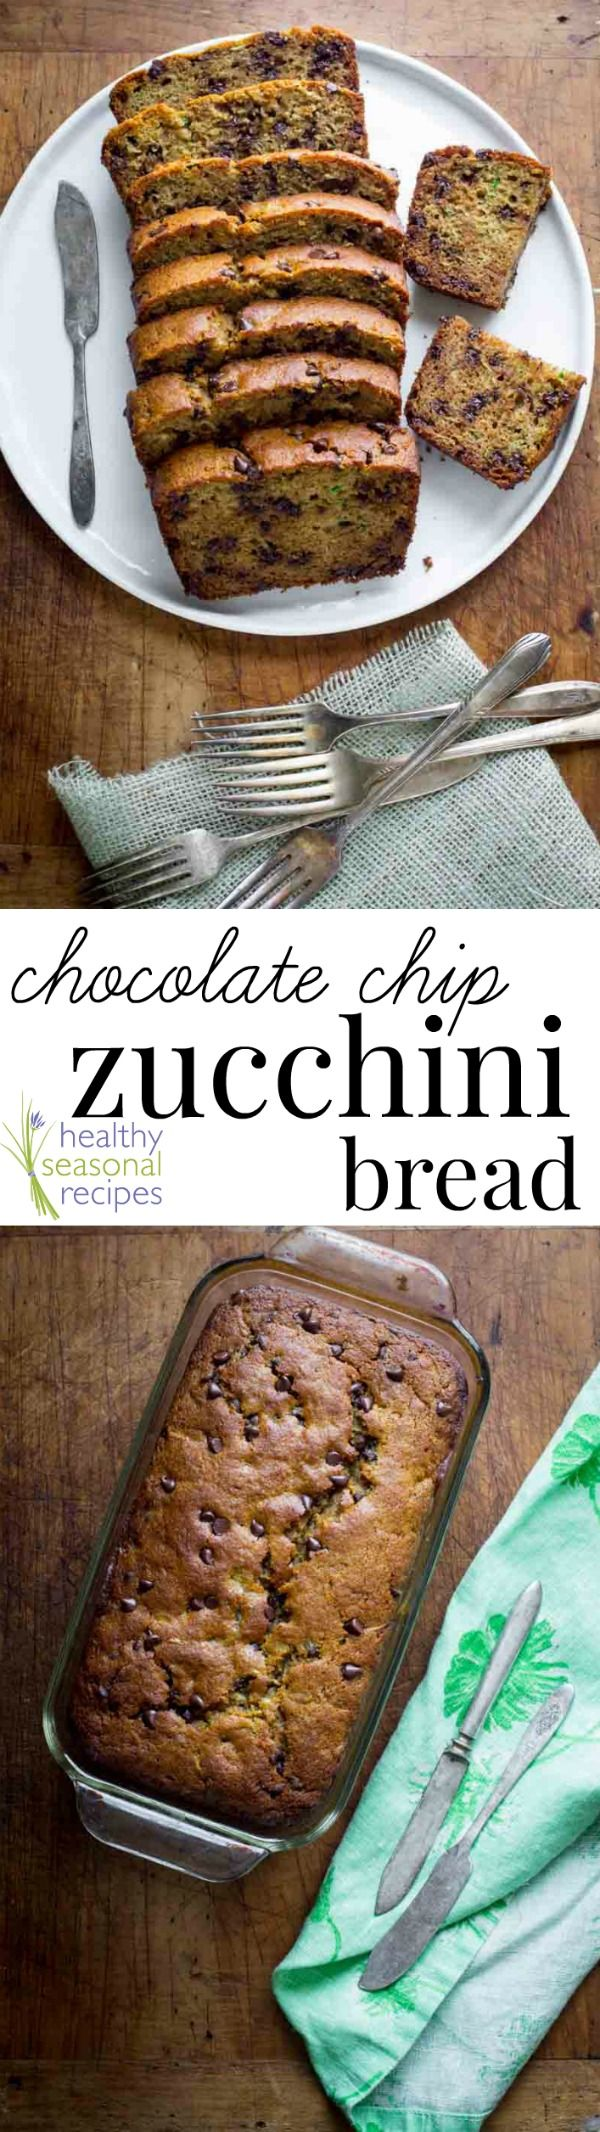 Blog post at Healthy Seasonal Recipes : Once this honey sweetened and whole grain chocolate chip zucchini bread recipe is sliced, it stands no chance of lasting more than a few min[..]